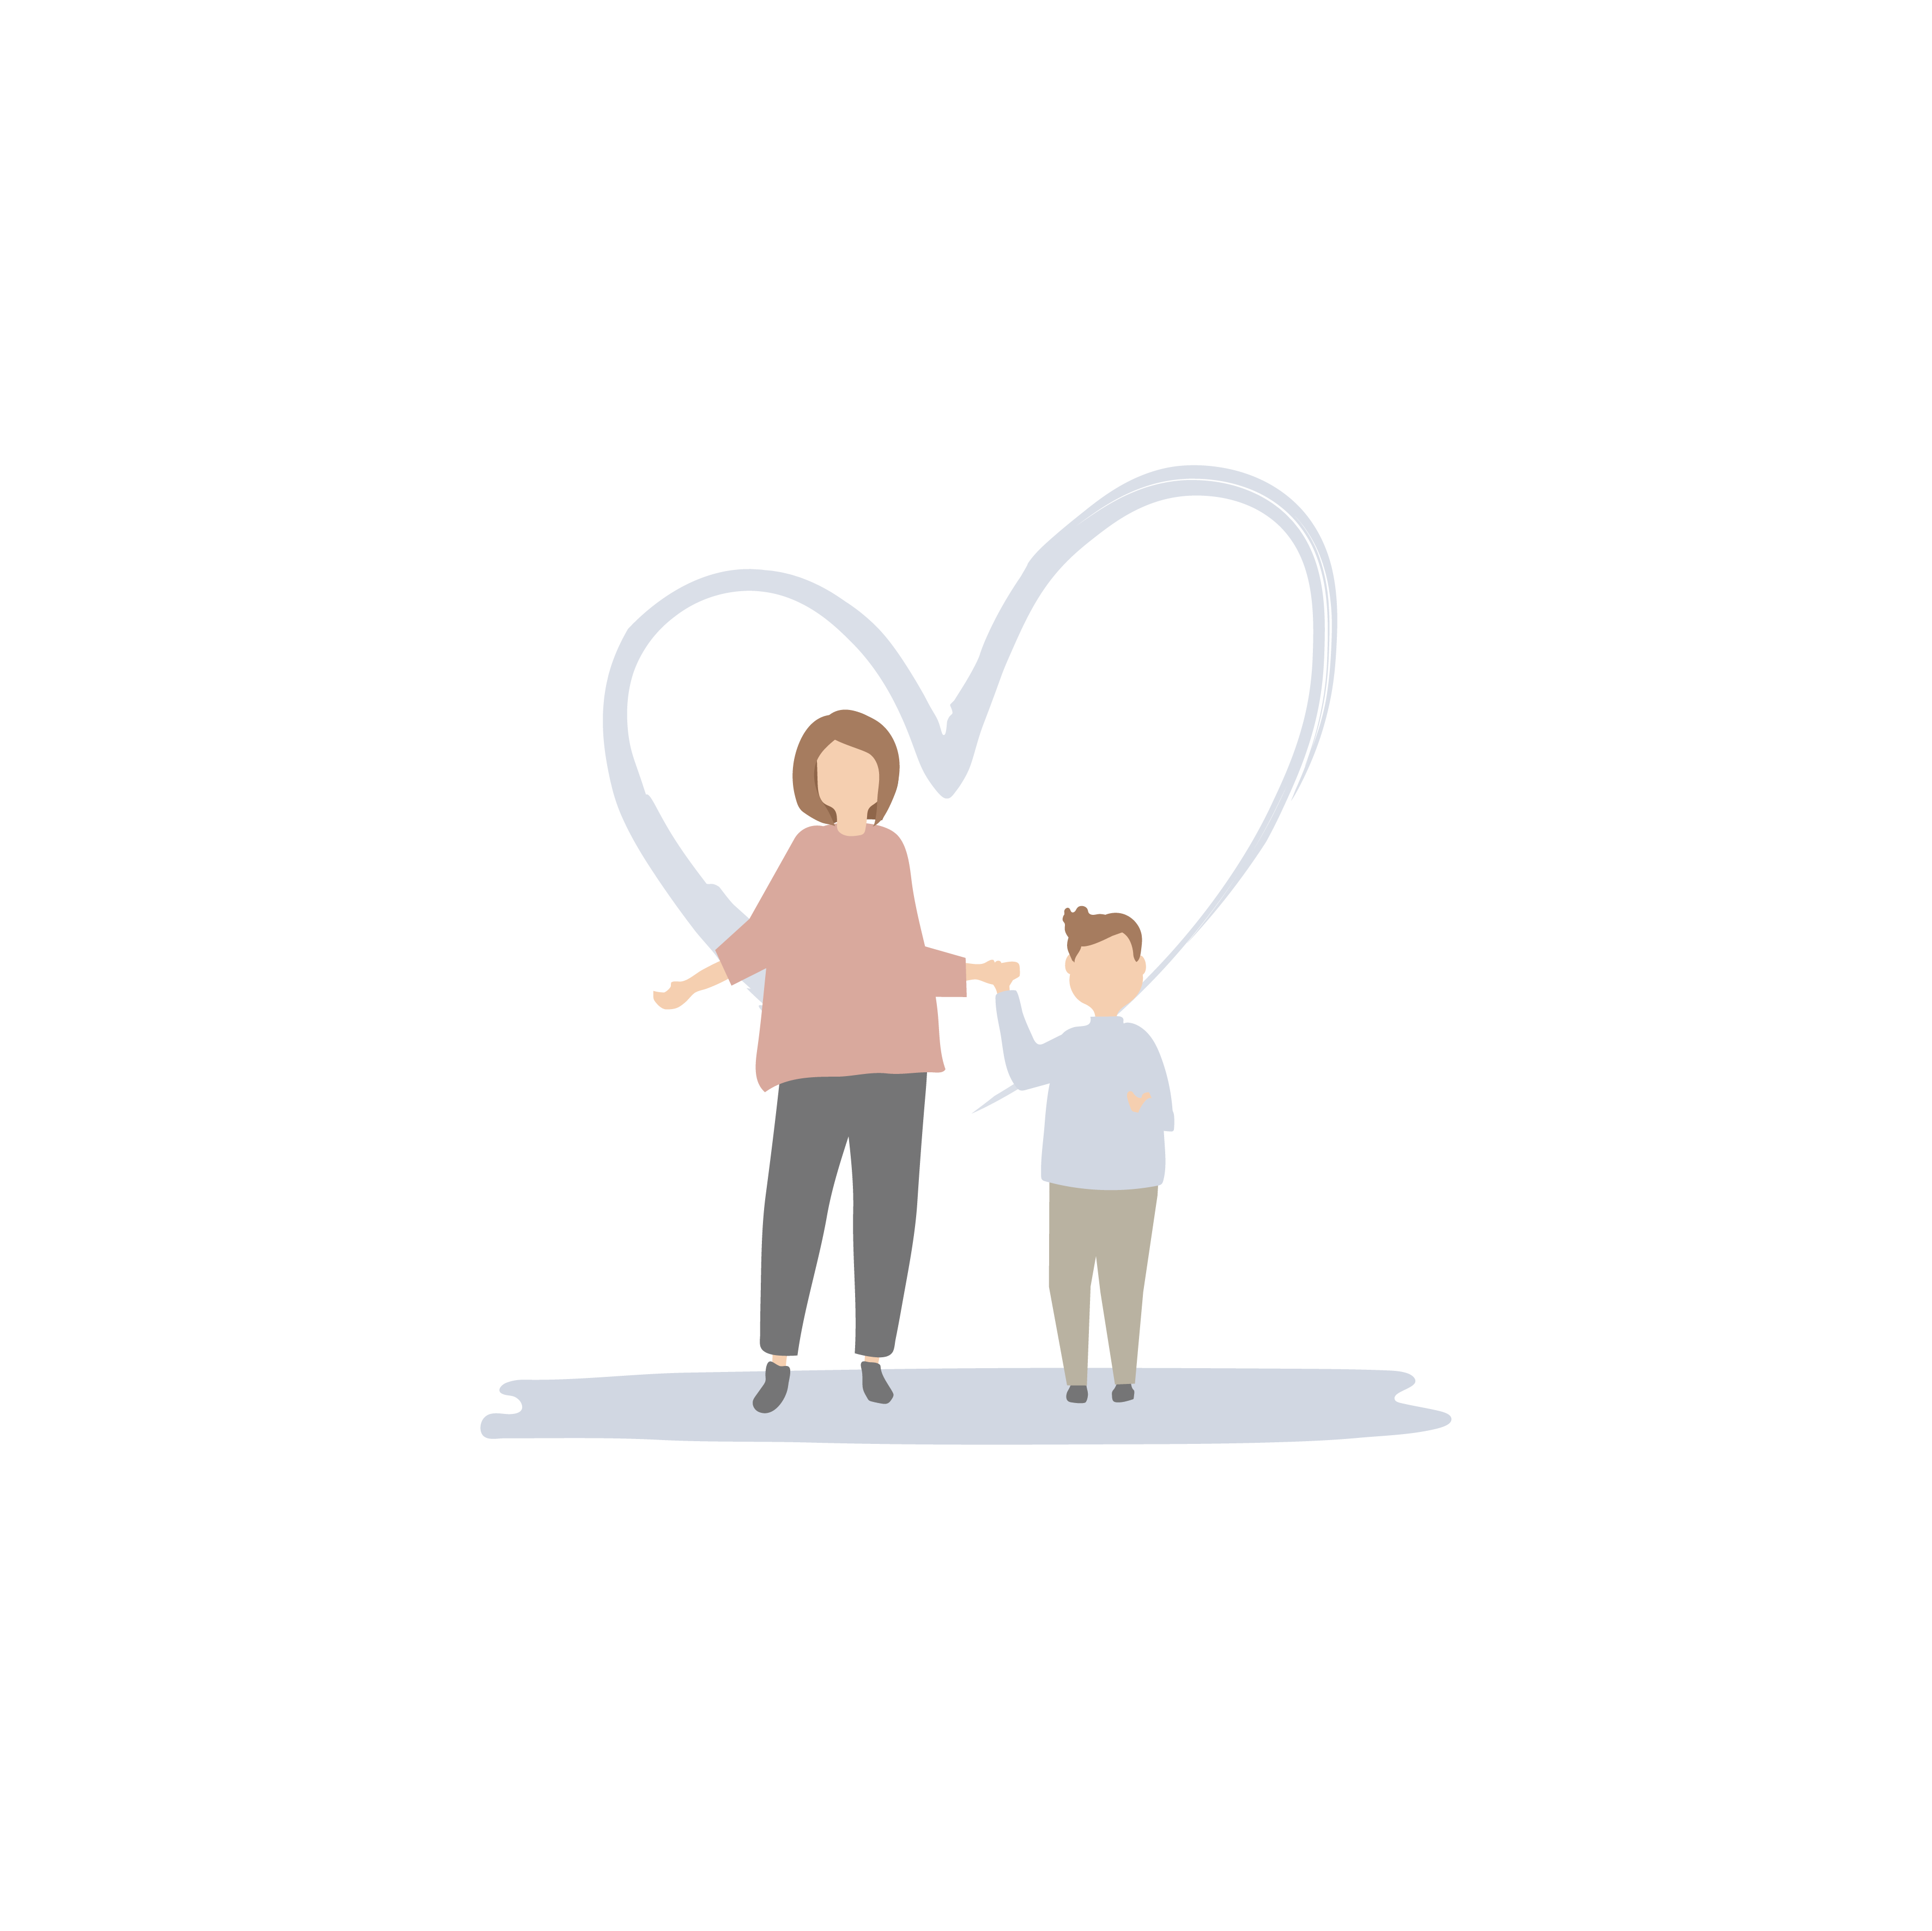 An illustration of mother and son holding hands